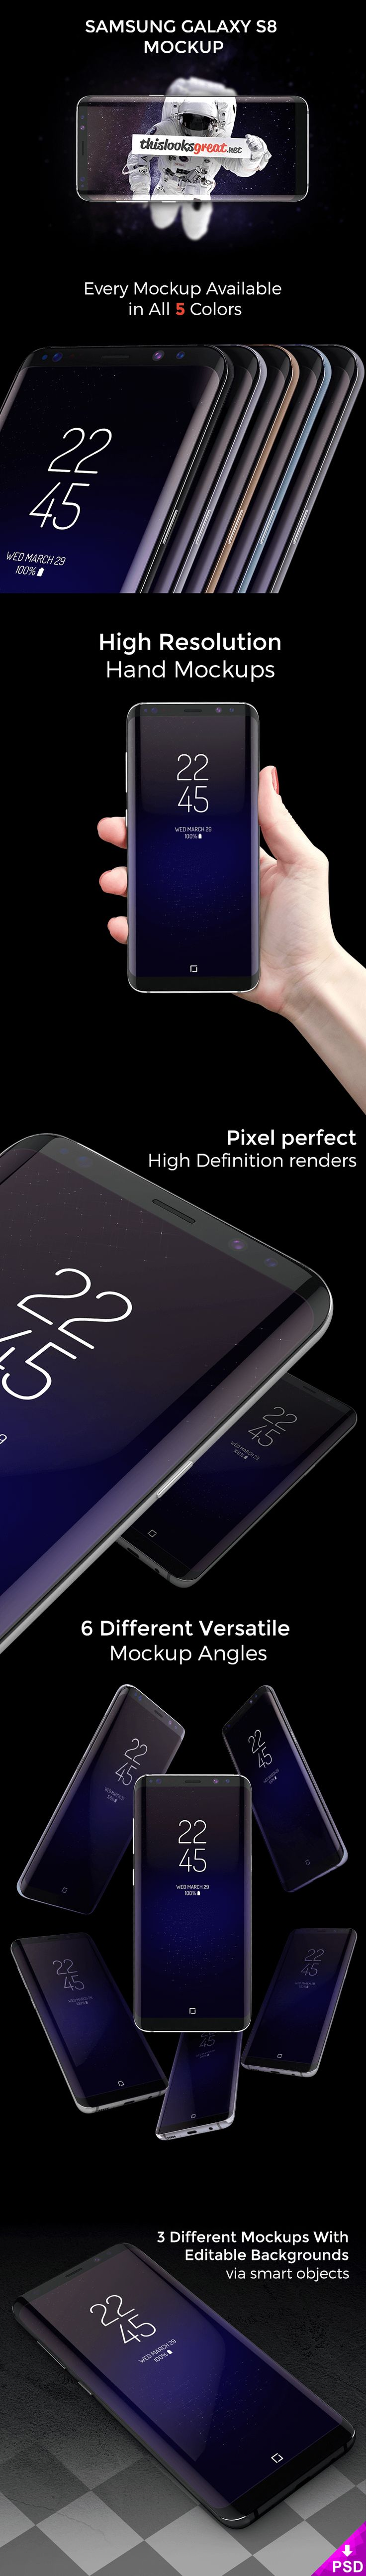 712 best mockups computer images on pinterest miniatures mock samsung galaxy s8 mockup pronofoot35fo Gallery